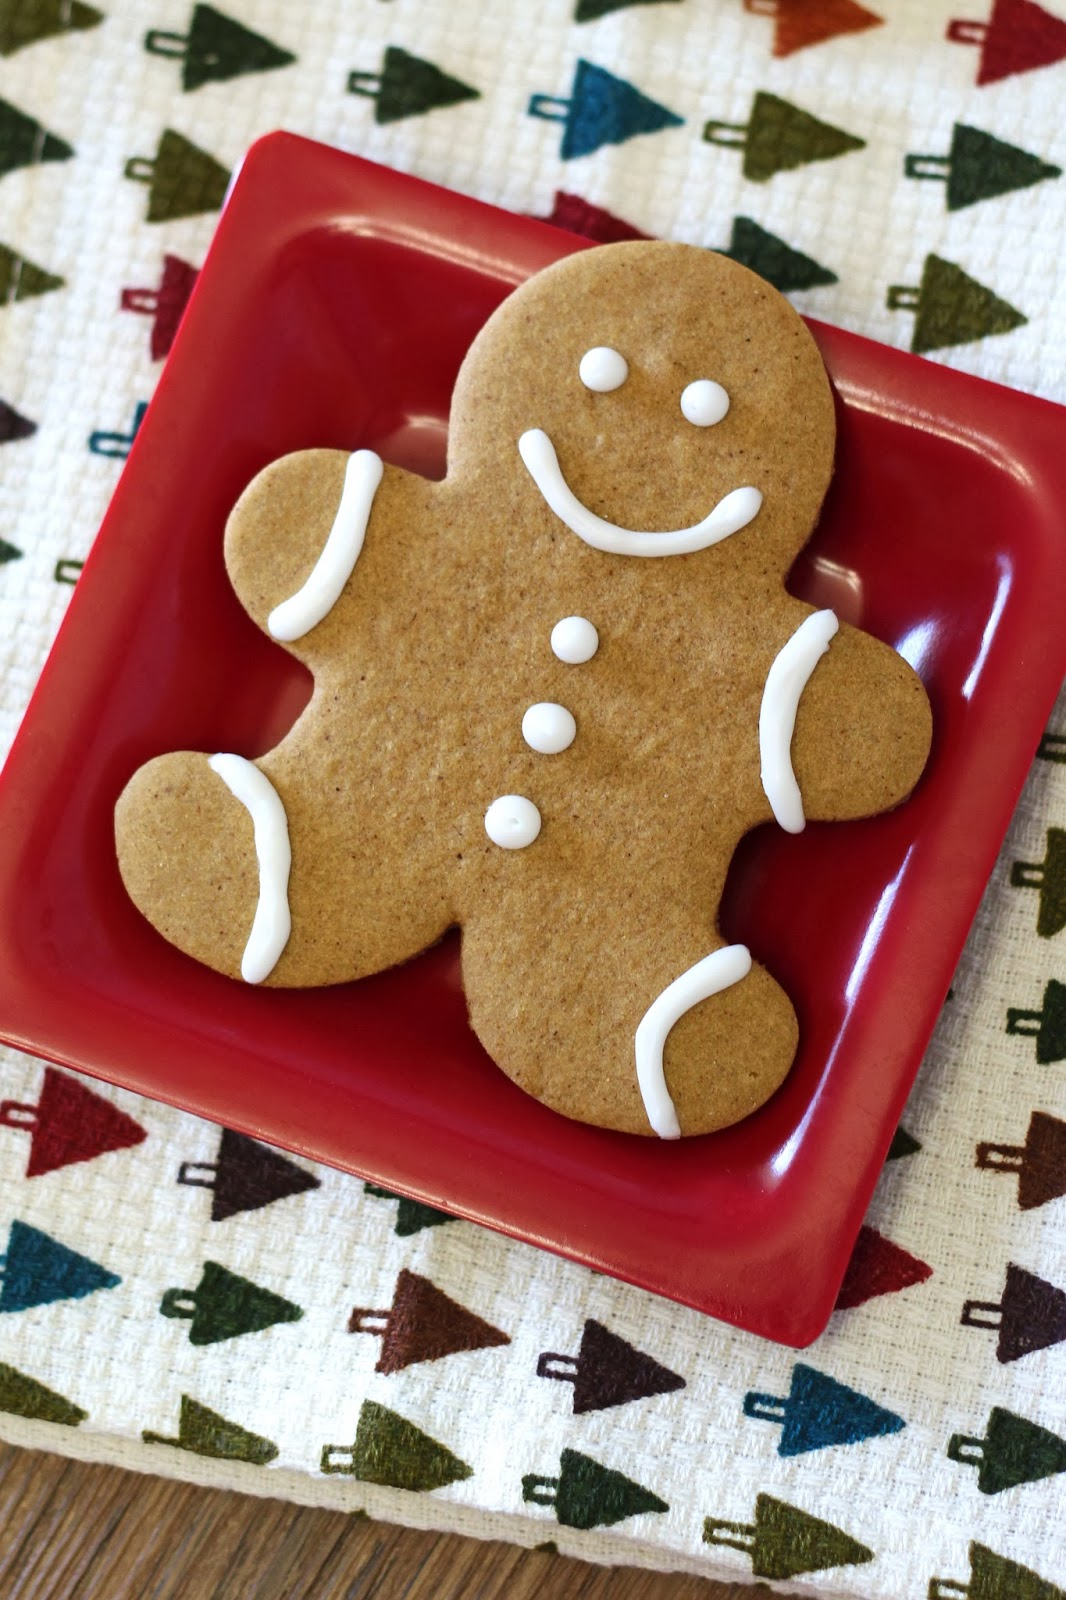 ... Bakes Gluten Free Treats: gluten free vegan gingerbread men cookies